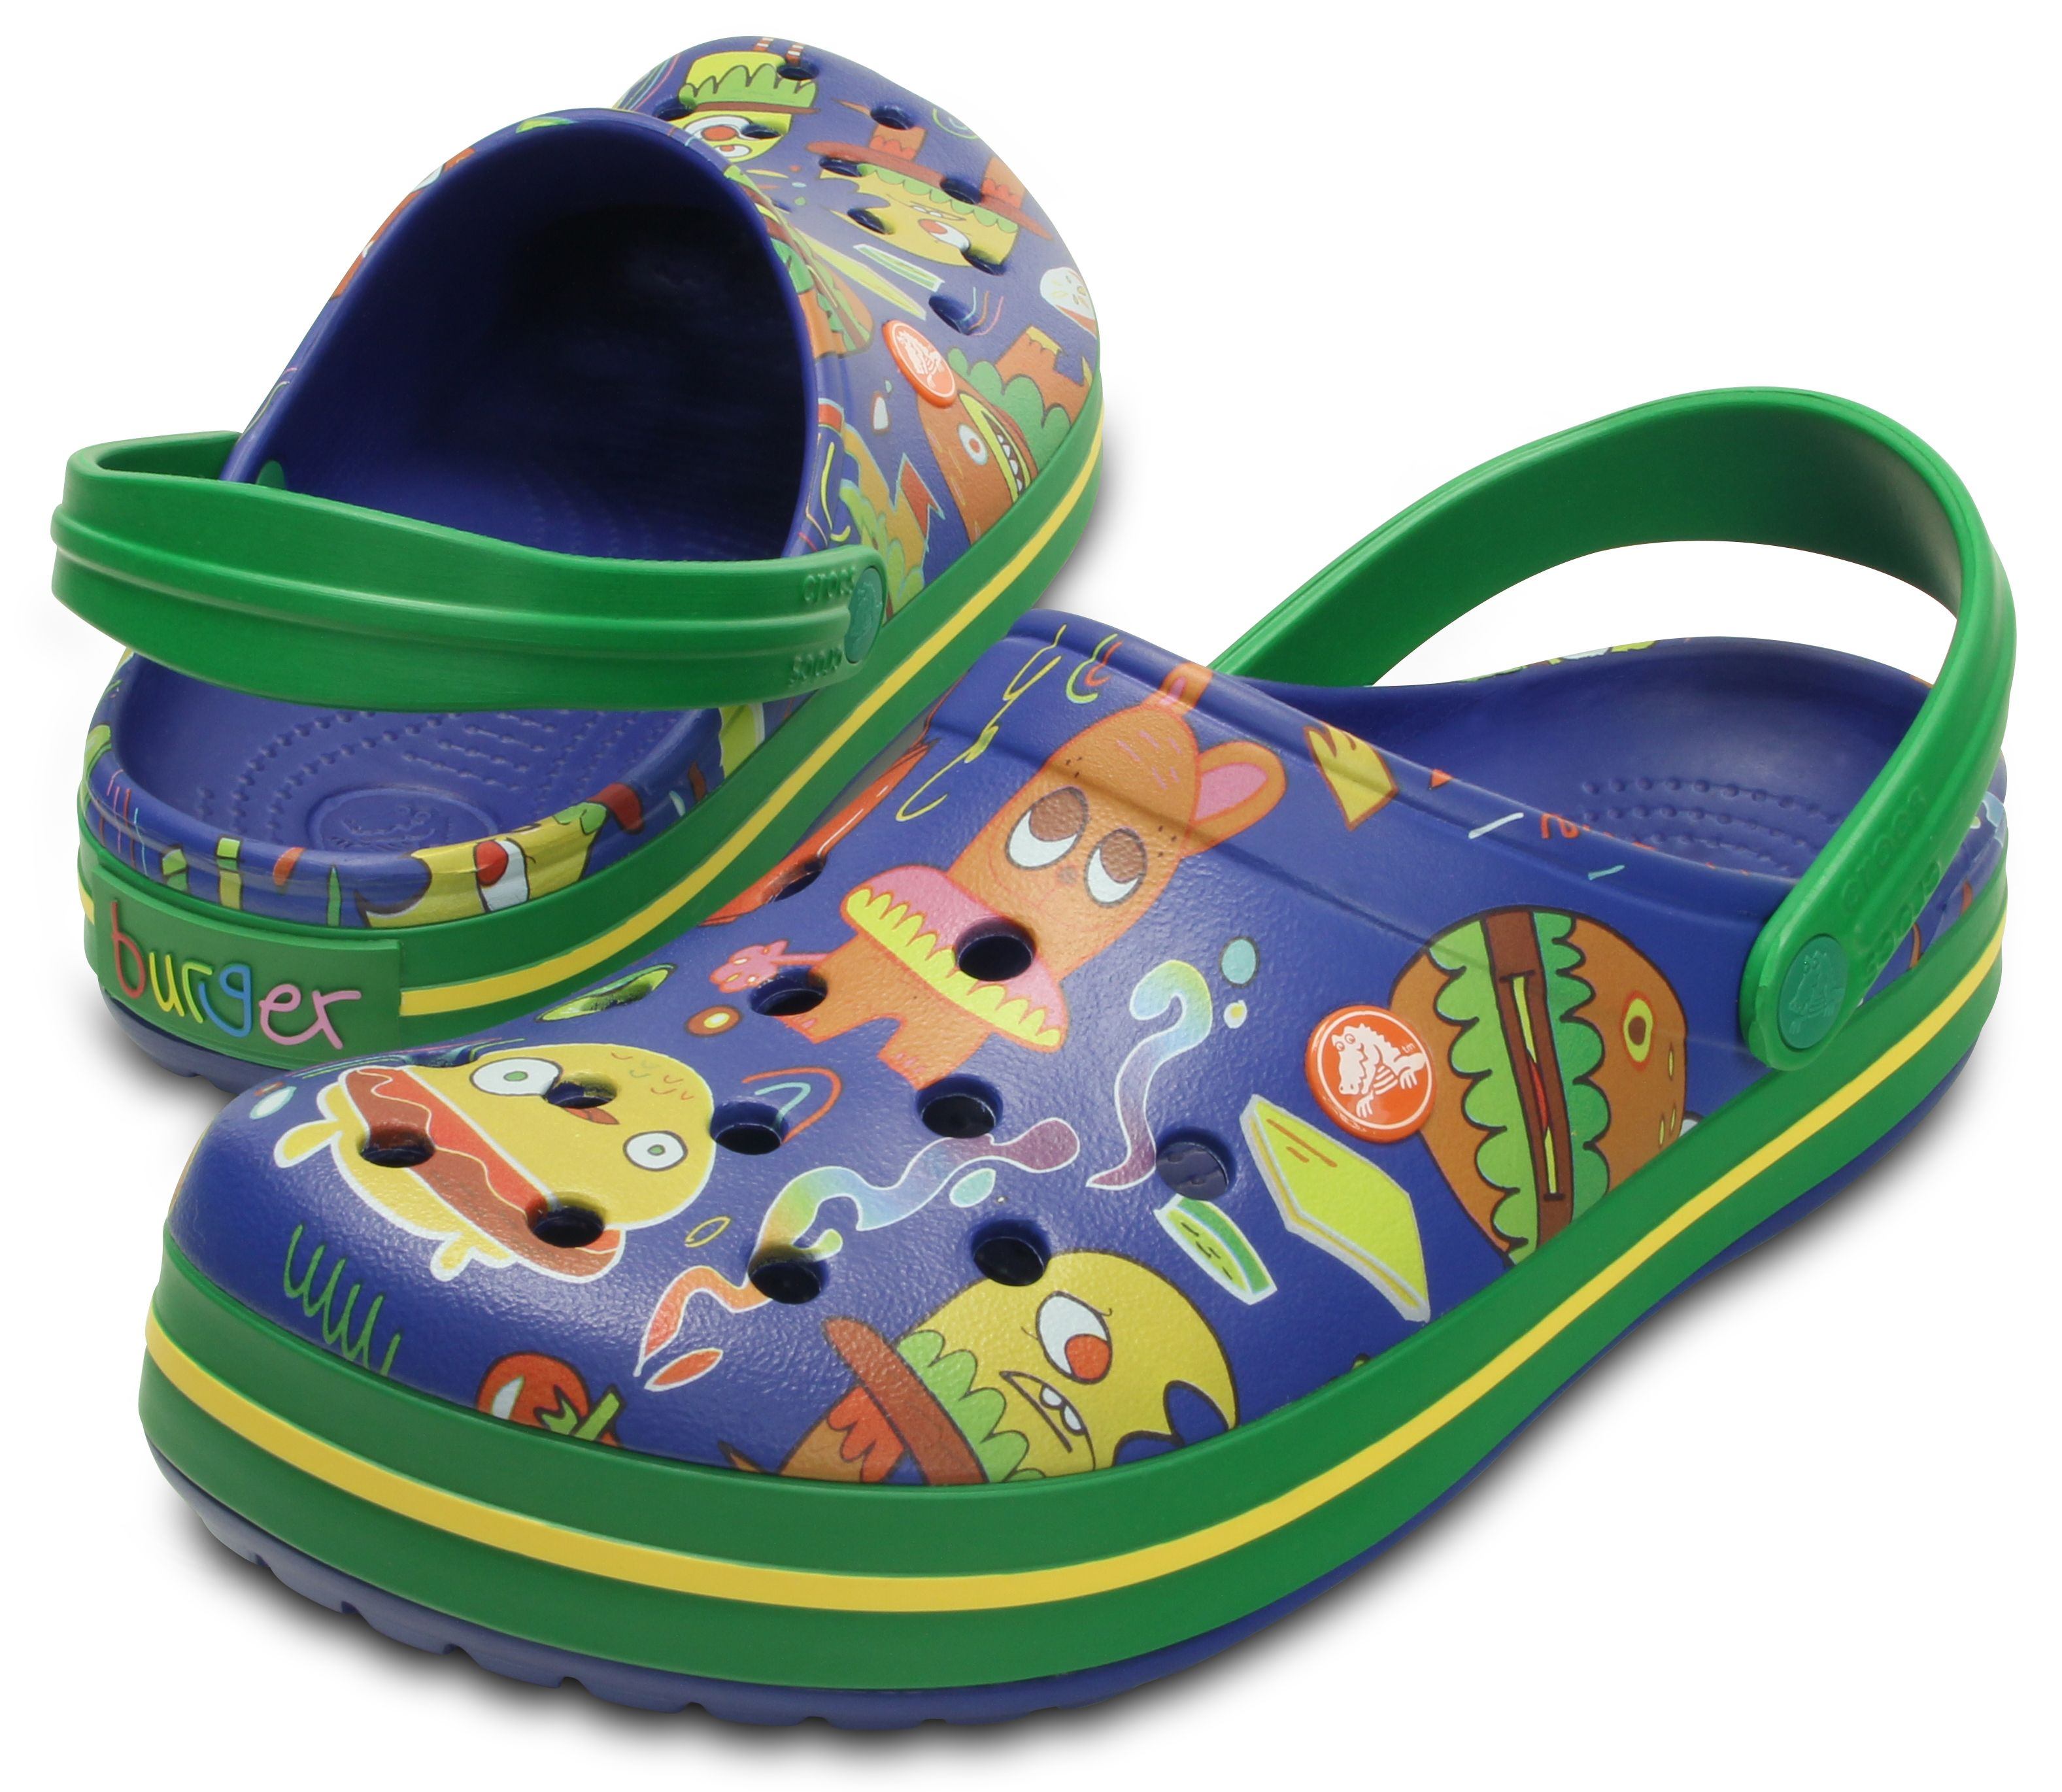 3287138fe0 Fun with food Crocs shoes by artist Jon Burgerman. Now available ...